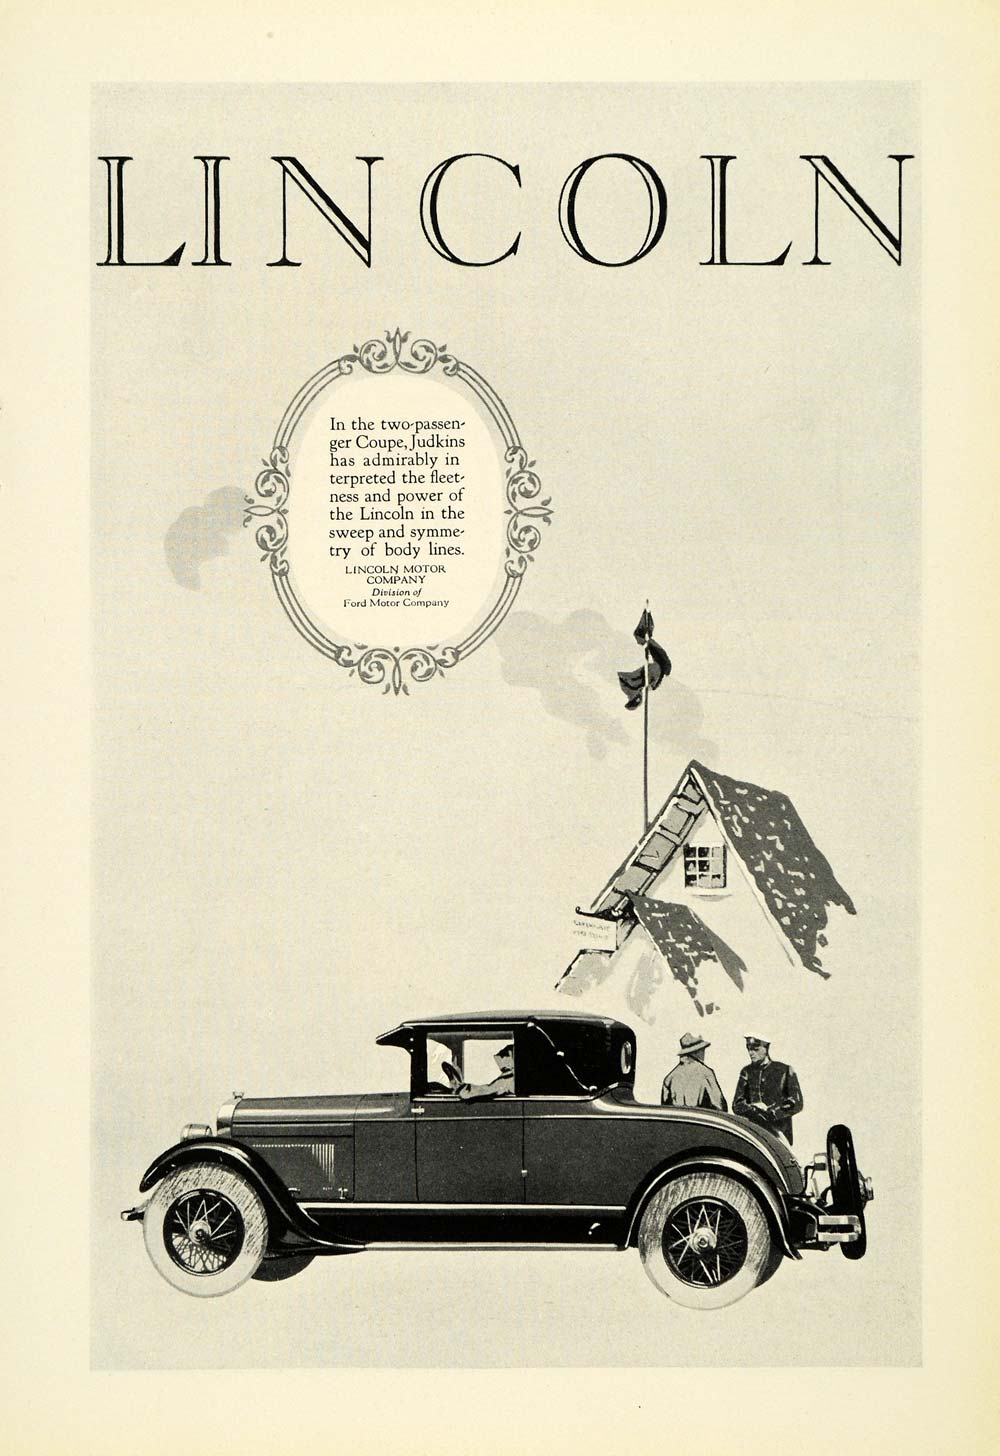 1926 Ad Antique Two Passenger Lincoln Coupe Judkins Motor Body Automobile NGM1